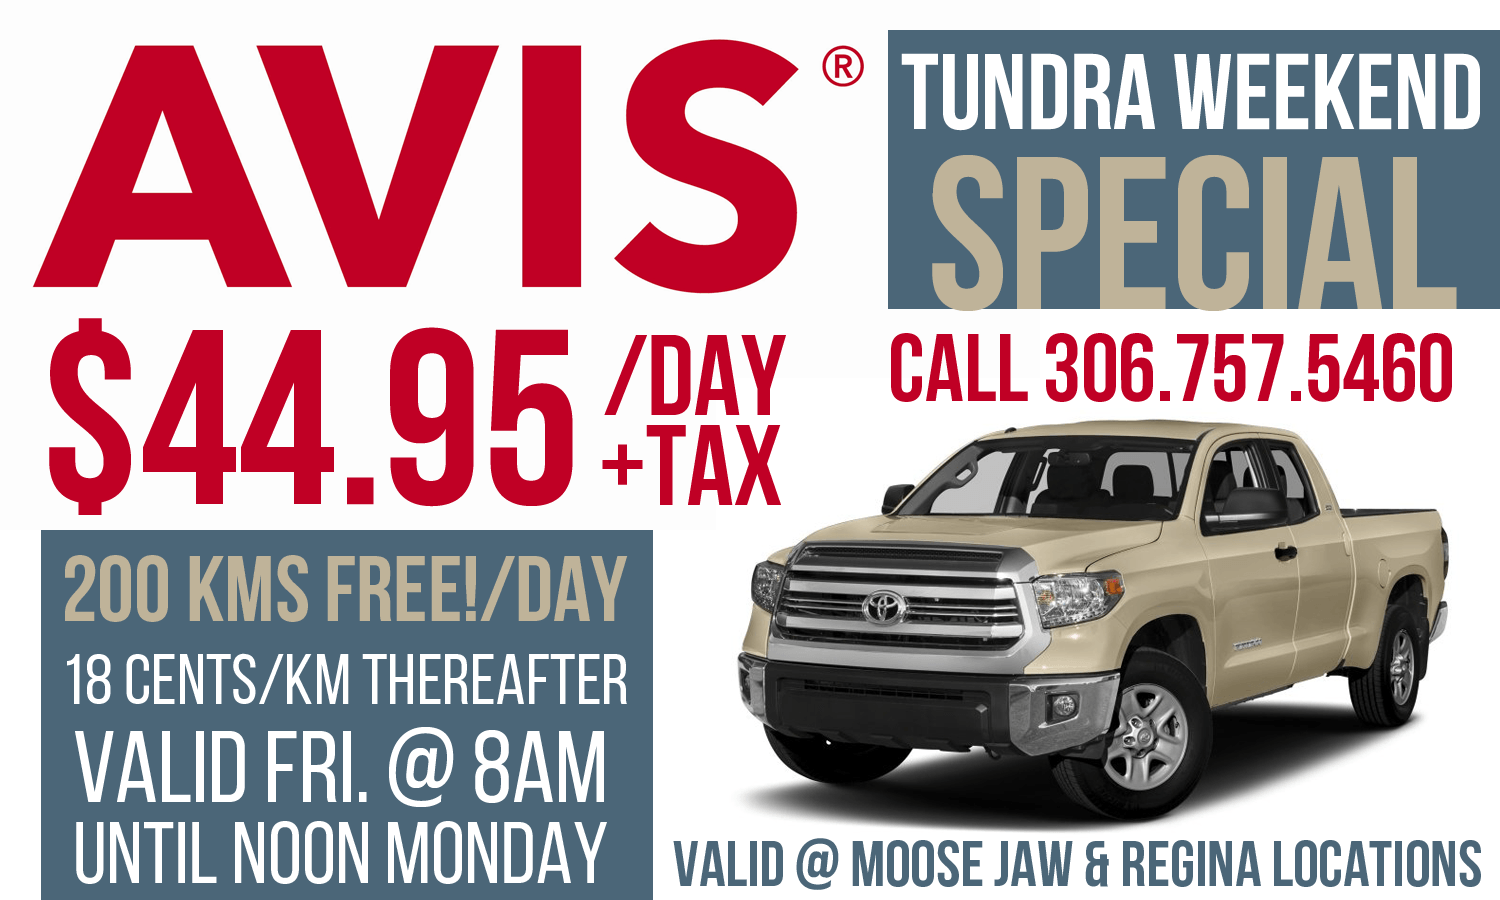 Tundra weekend special